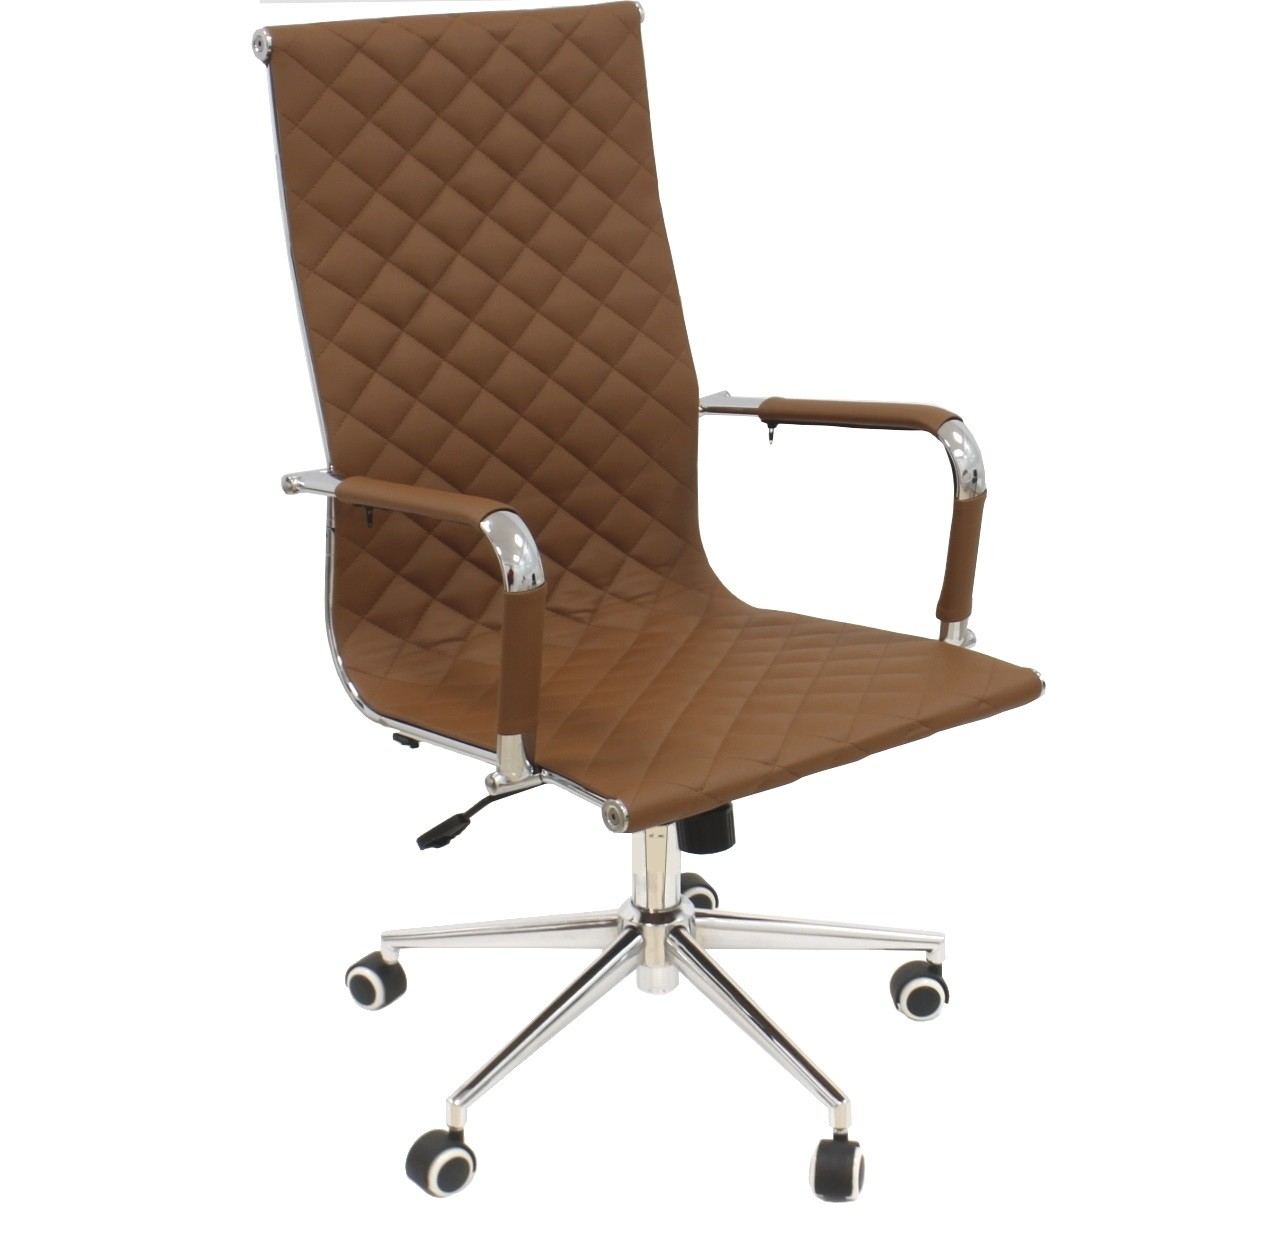 Office Armchair ZAGREB, High, Gas, Tilt, Similpiel Brown